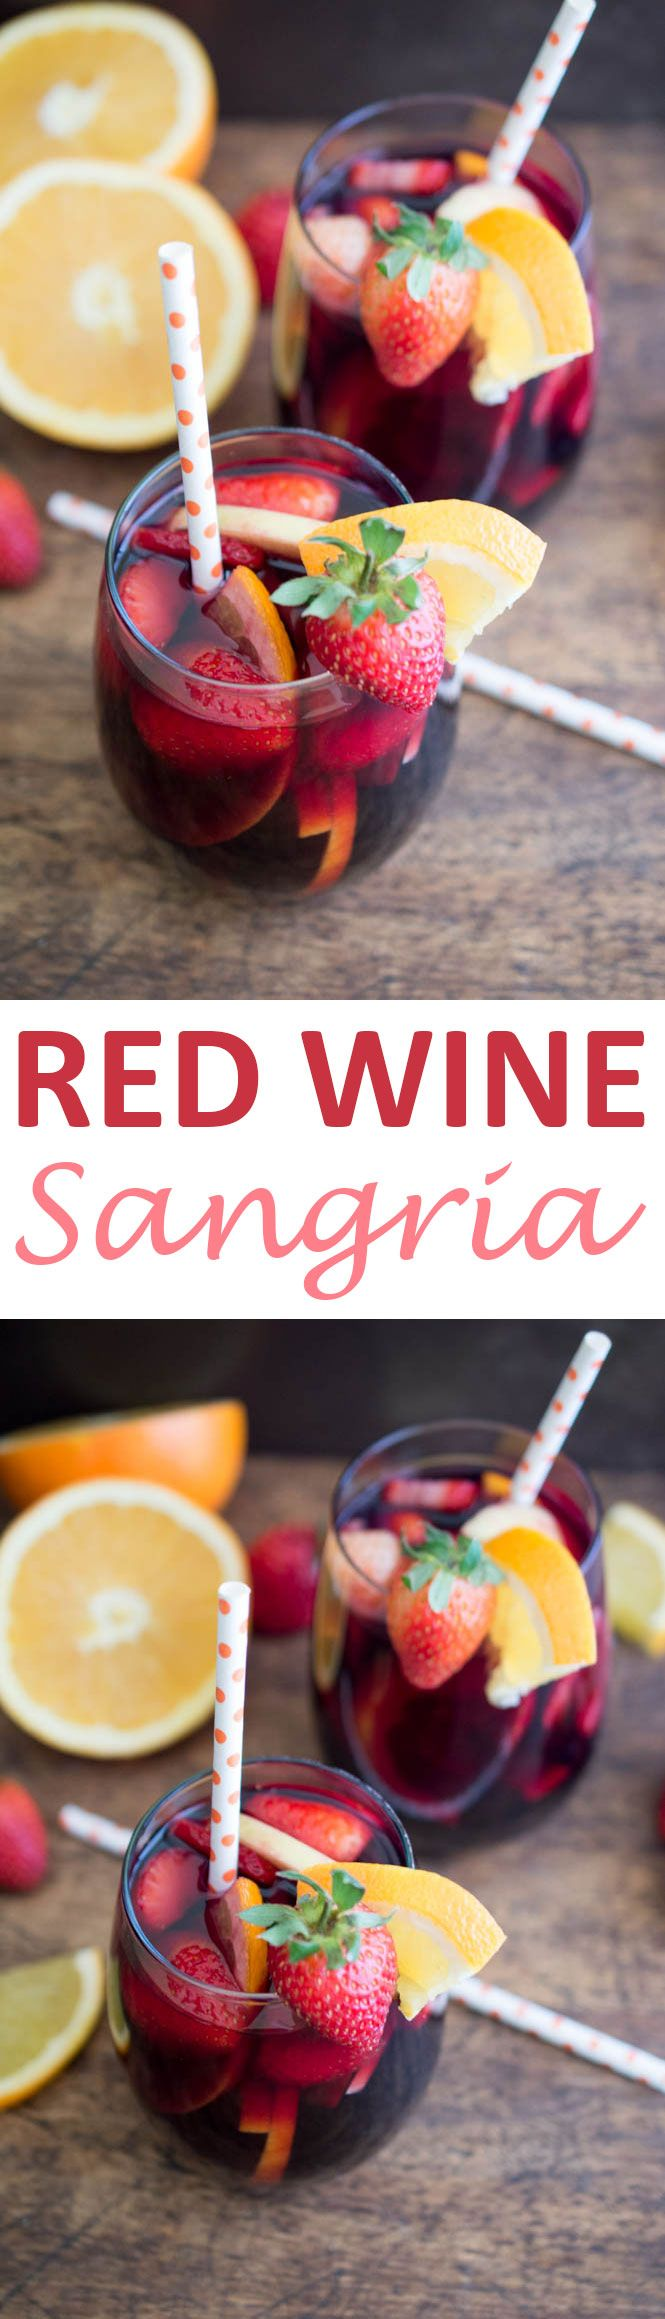 Simple and Fruity Red Wine Sangria. Made with fresh fruit, red wine, brandy and pomegranate juice. #recipe #red #wine #sangria